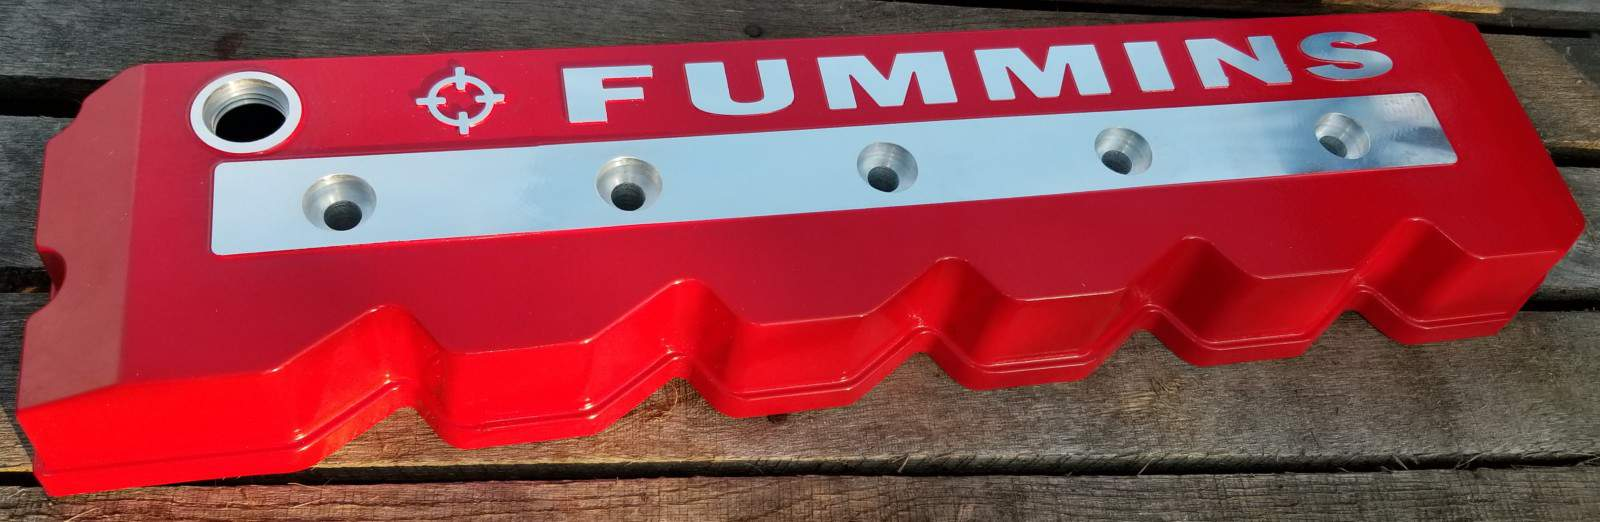 Fummins Cummins valve cover